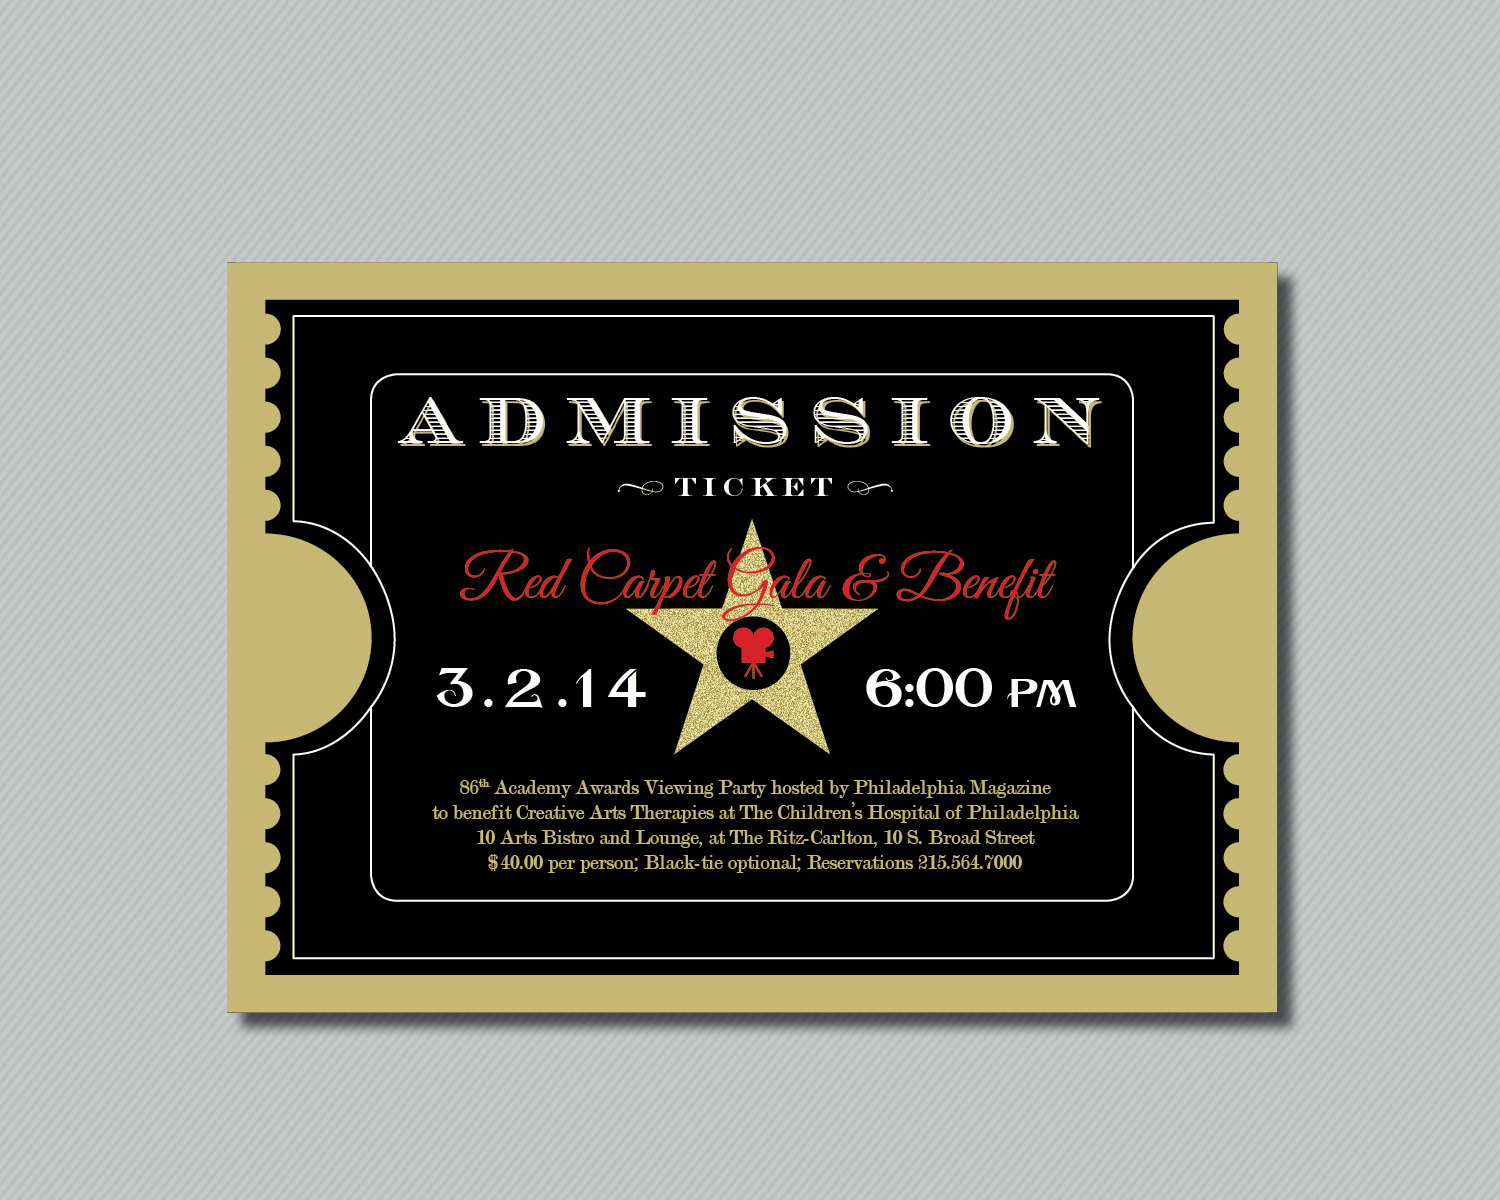 Admission Ticket Invitation Template Free Beautiful Beautiful Admission Ticket Template Design for Red Carpet